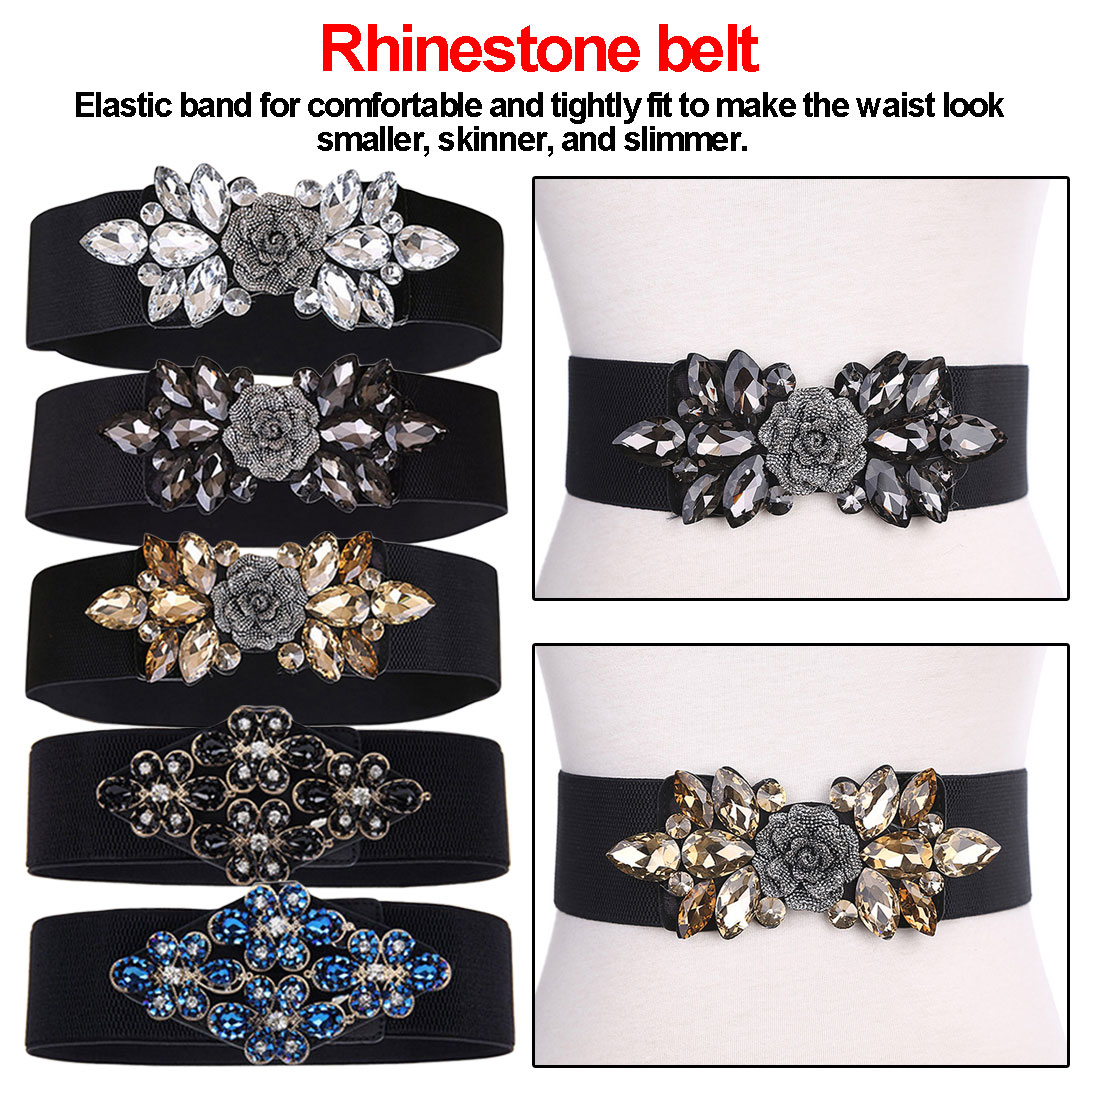 Waistband For Ladies Women Belts Luxury Brand Wide Floral Rhinestone Belt Buckles Stretchy Elastic Waist Belt Fashion Design